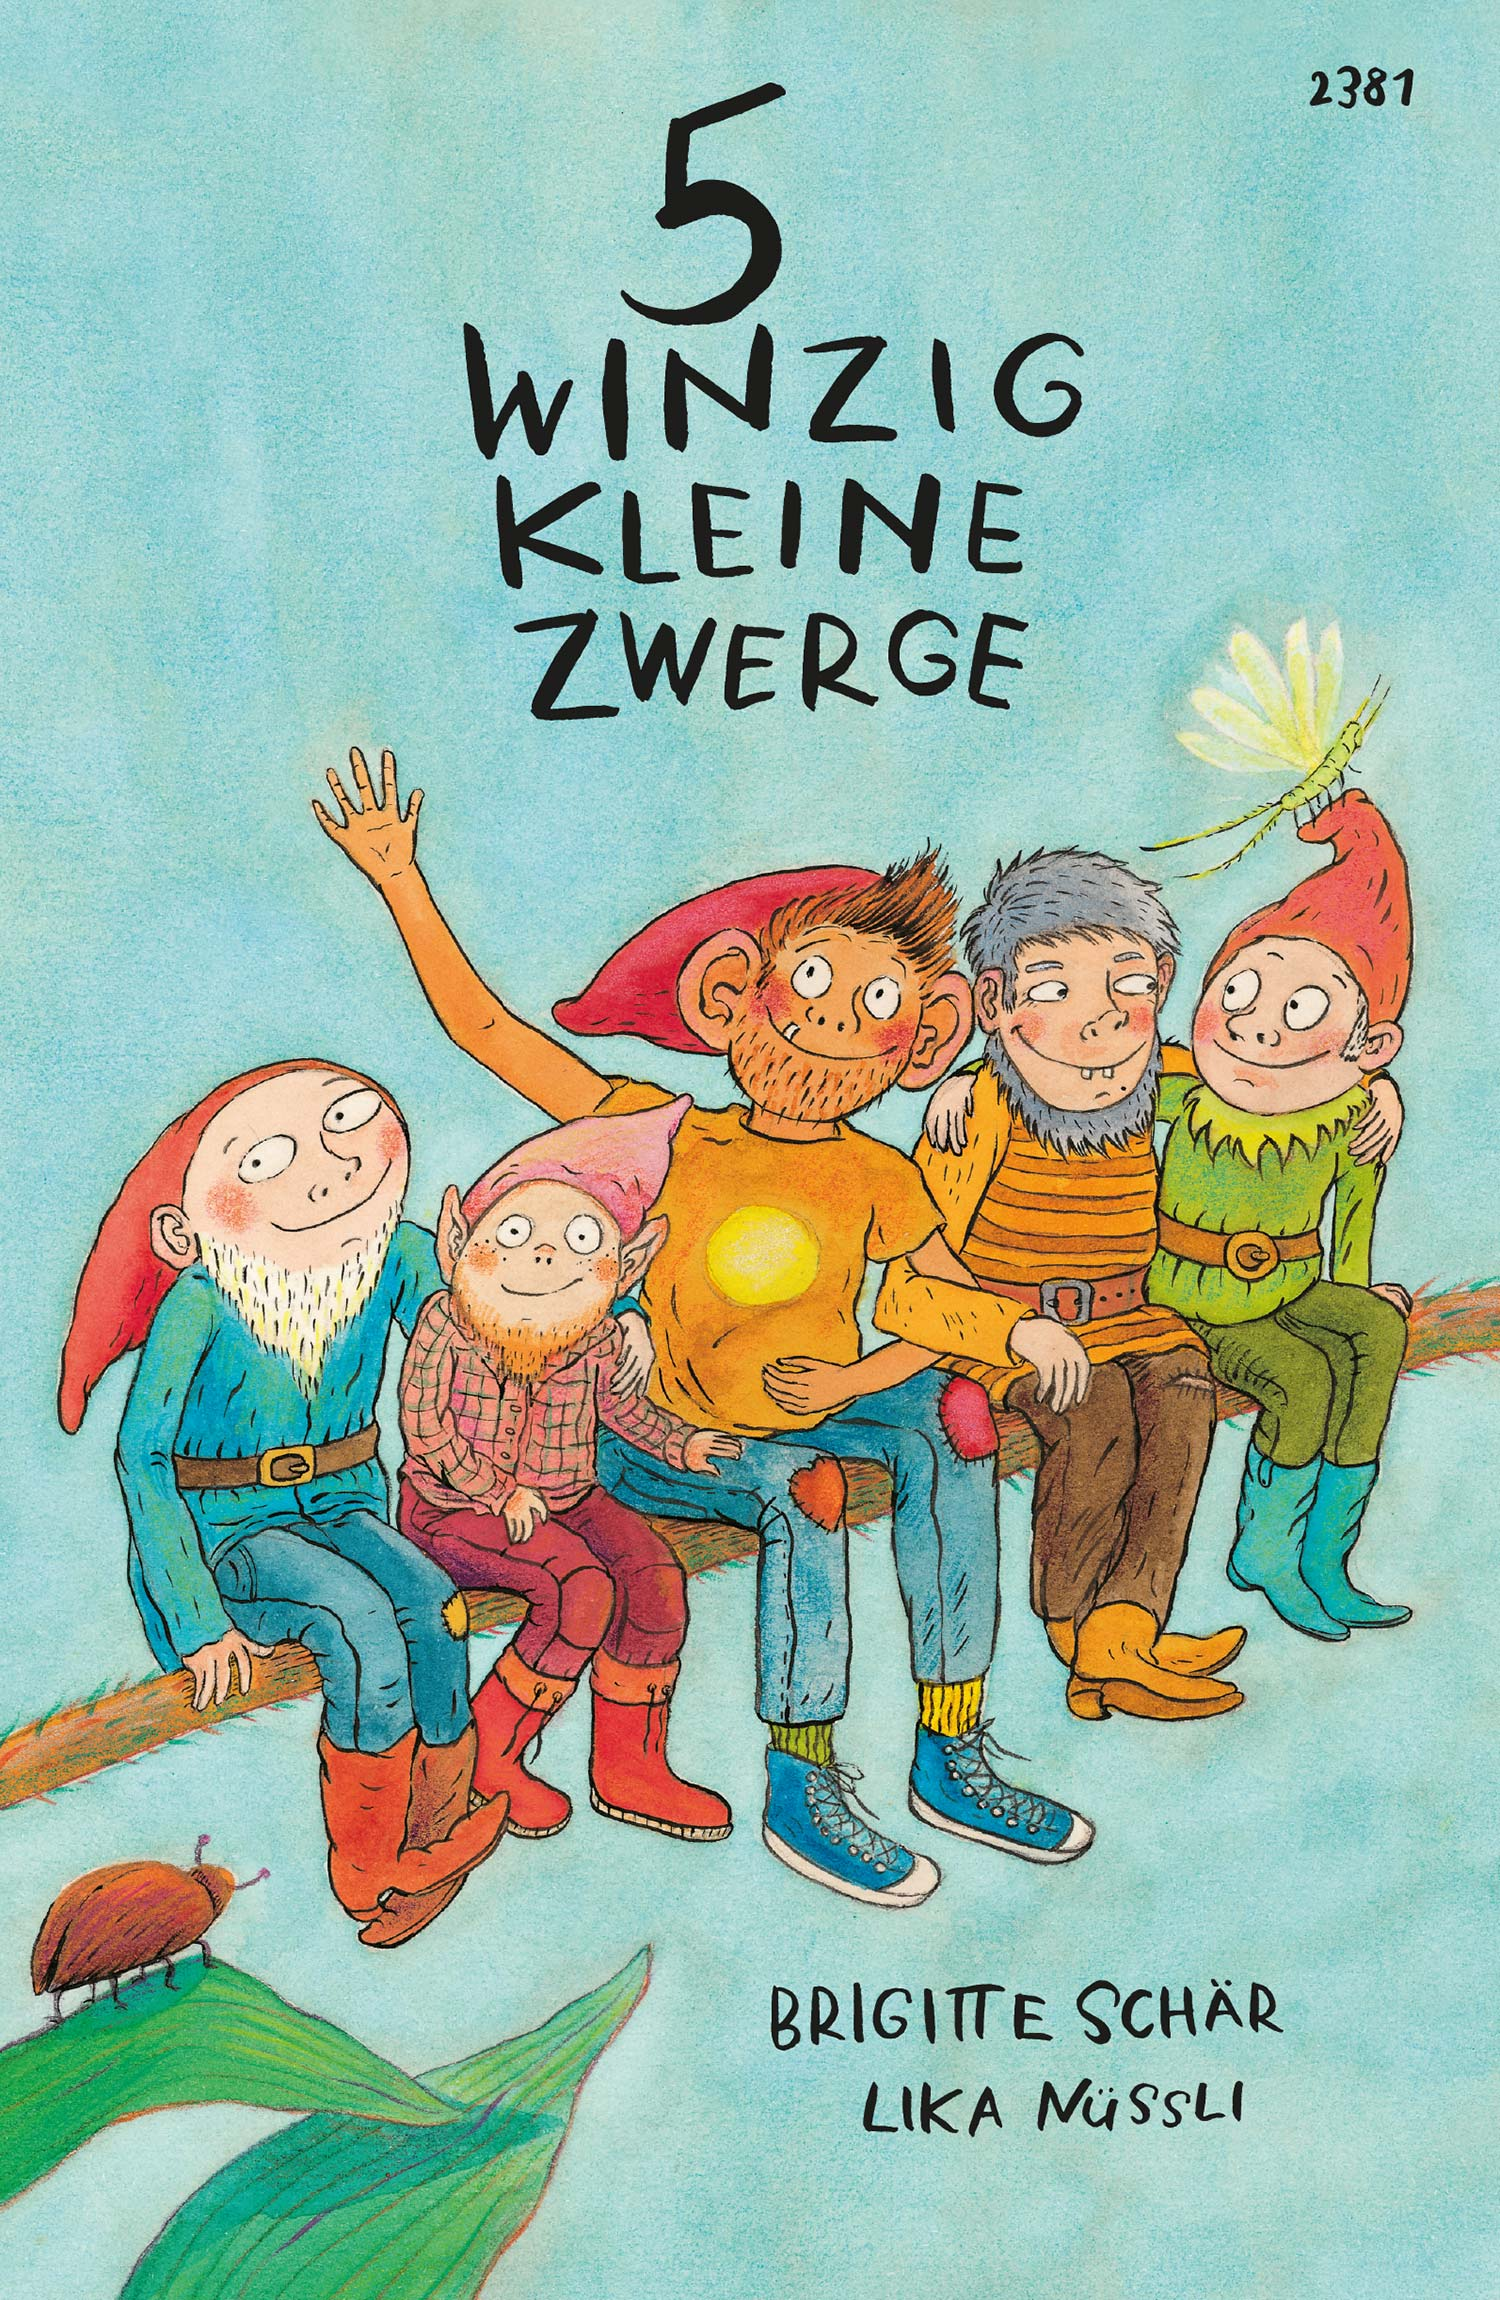 Preview image for LOM object 5 winzig kleine Zwerge